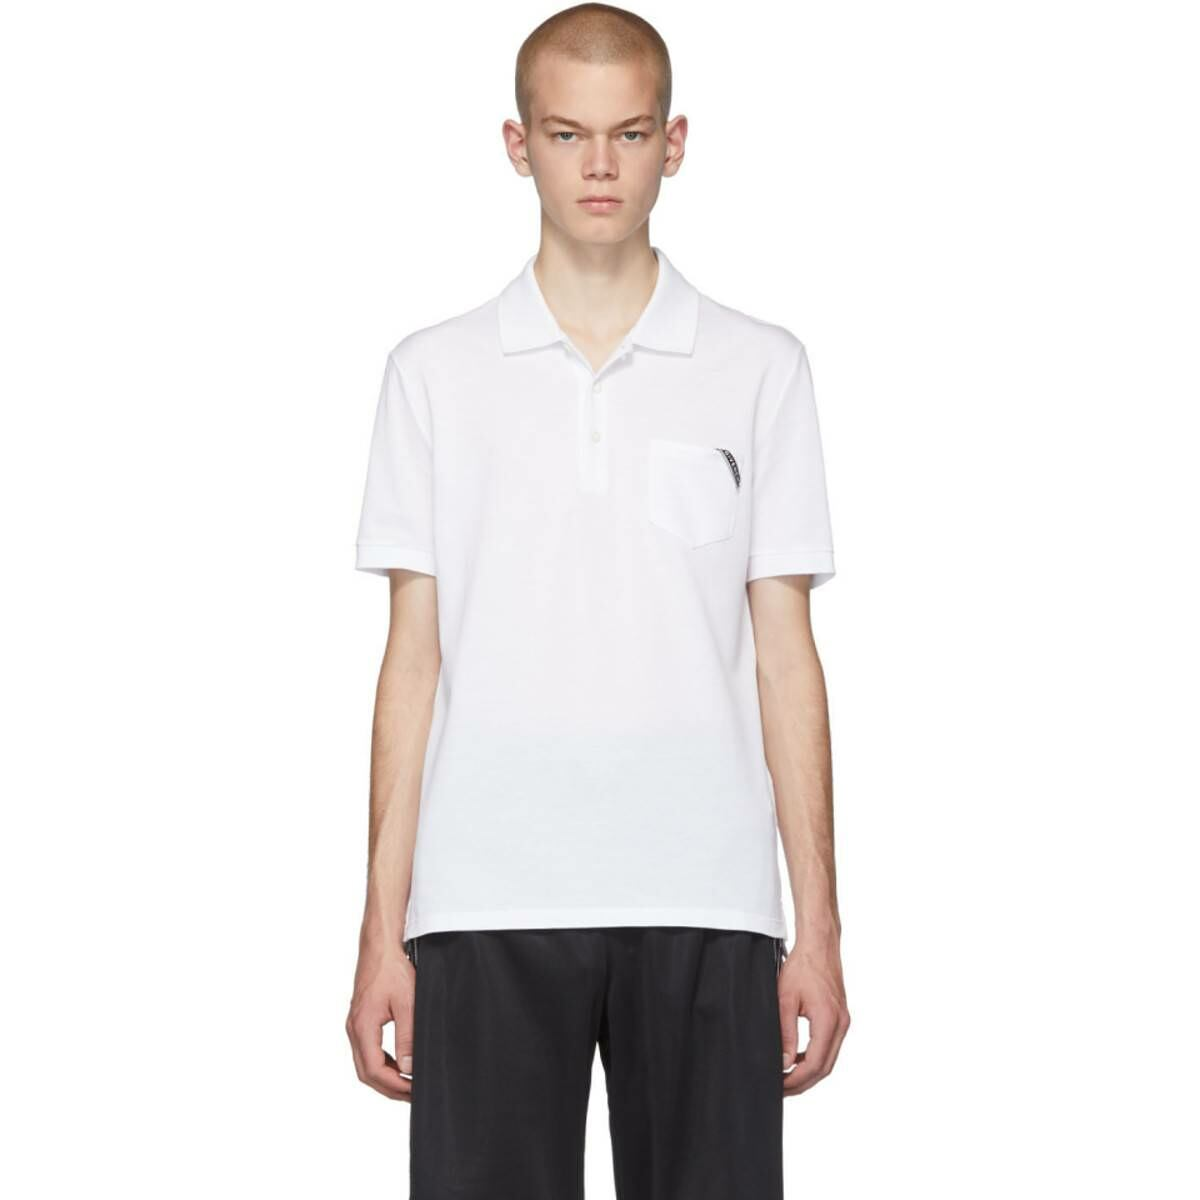 Givenchy White Logo Polo Ssense USA MEN Men FASHION Mens POLOSHIRTS